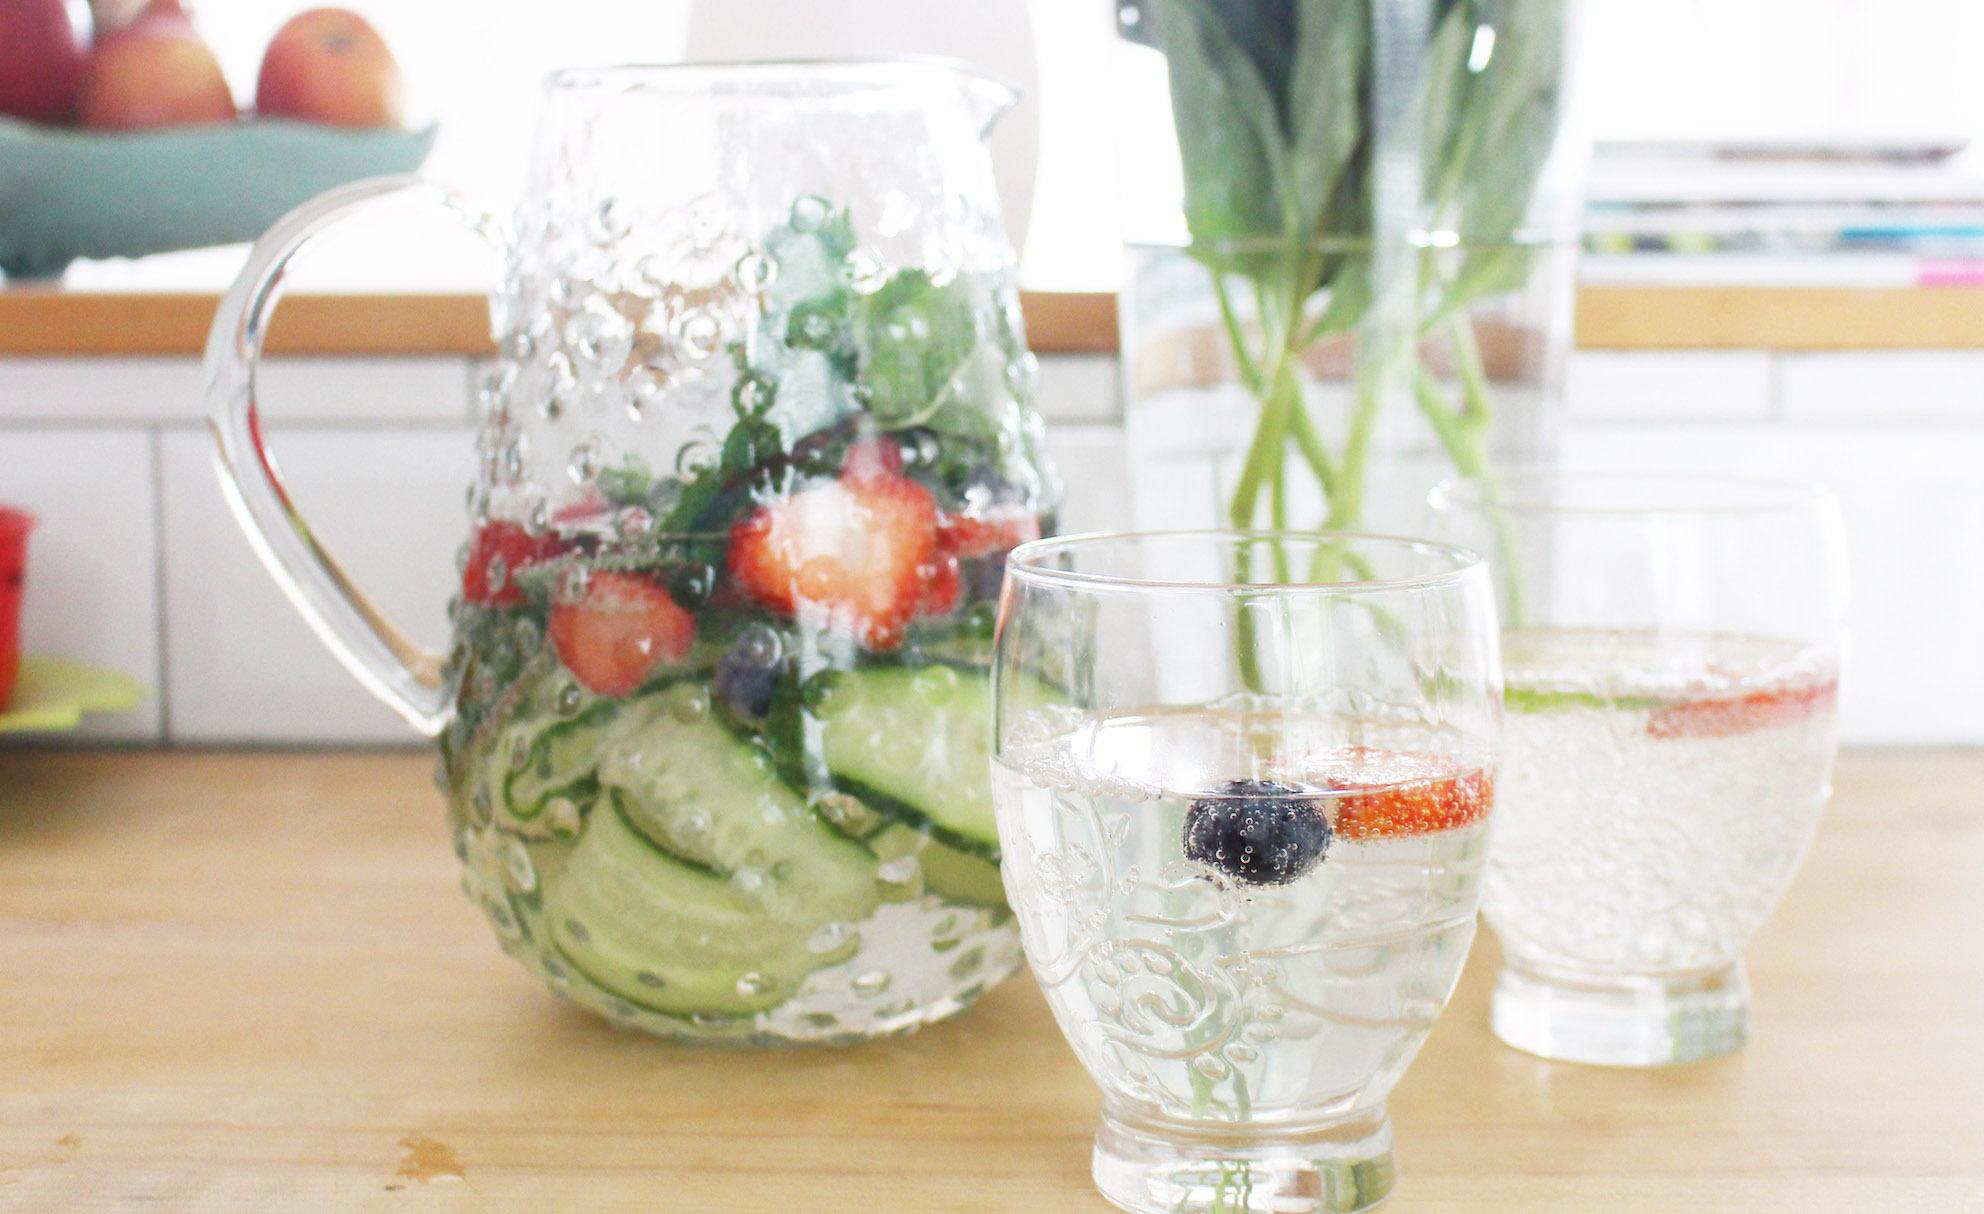 SPARKLING SUMMER WATER RECIPE